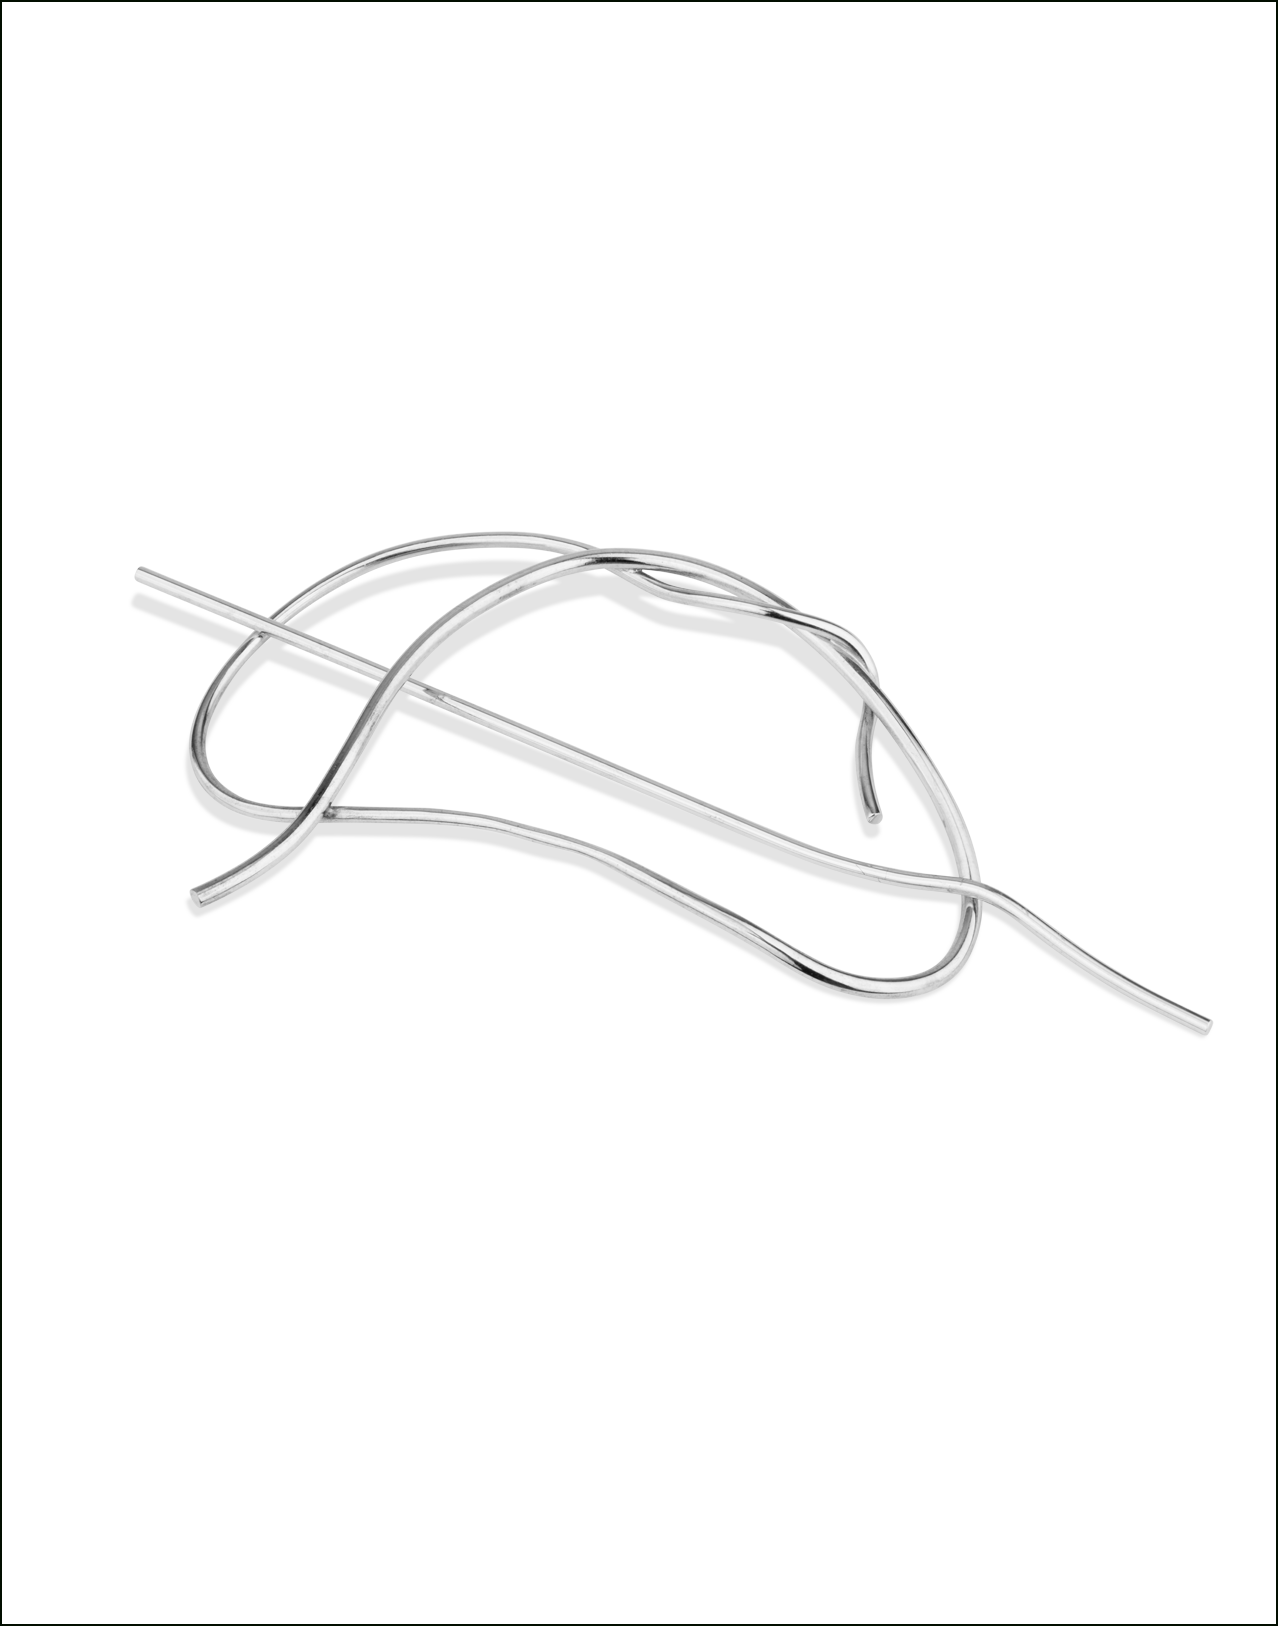 Completedworks-Hair-Pin-Silver-The-Lure-of-Civilisation-II-1-1.png